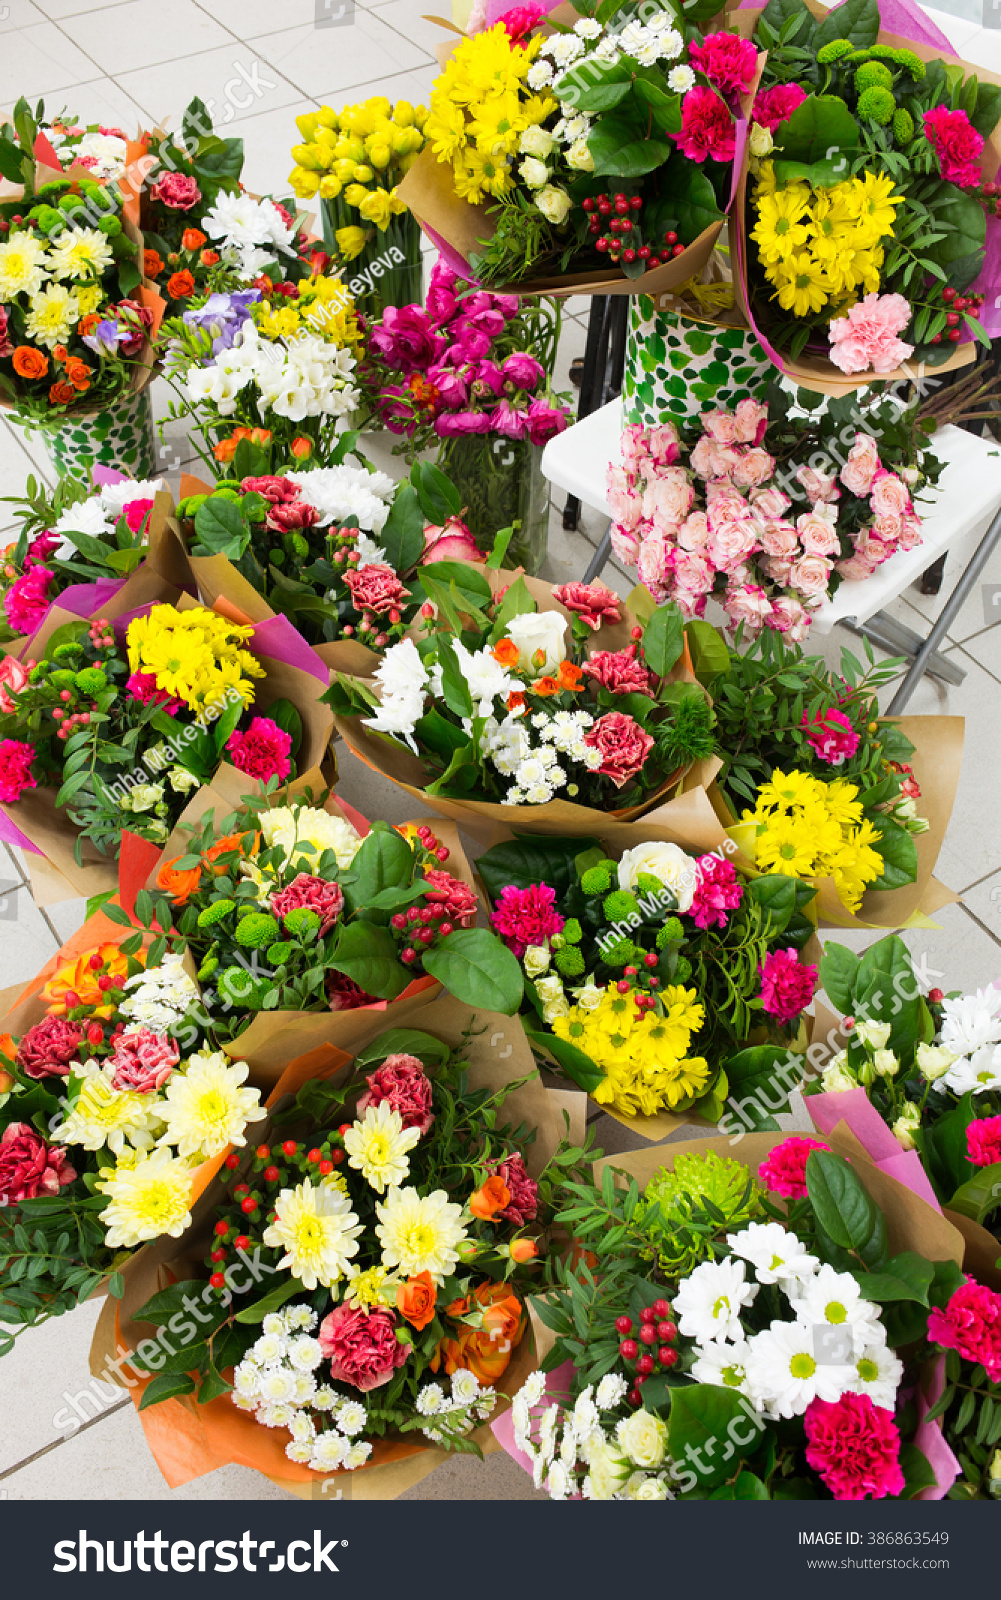 Flower Market Beautiful Fresh Flowers In Vases For Sale Ez Canvas